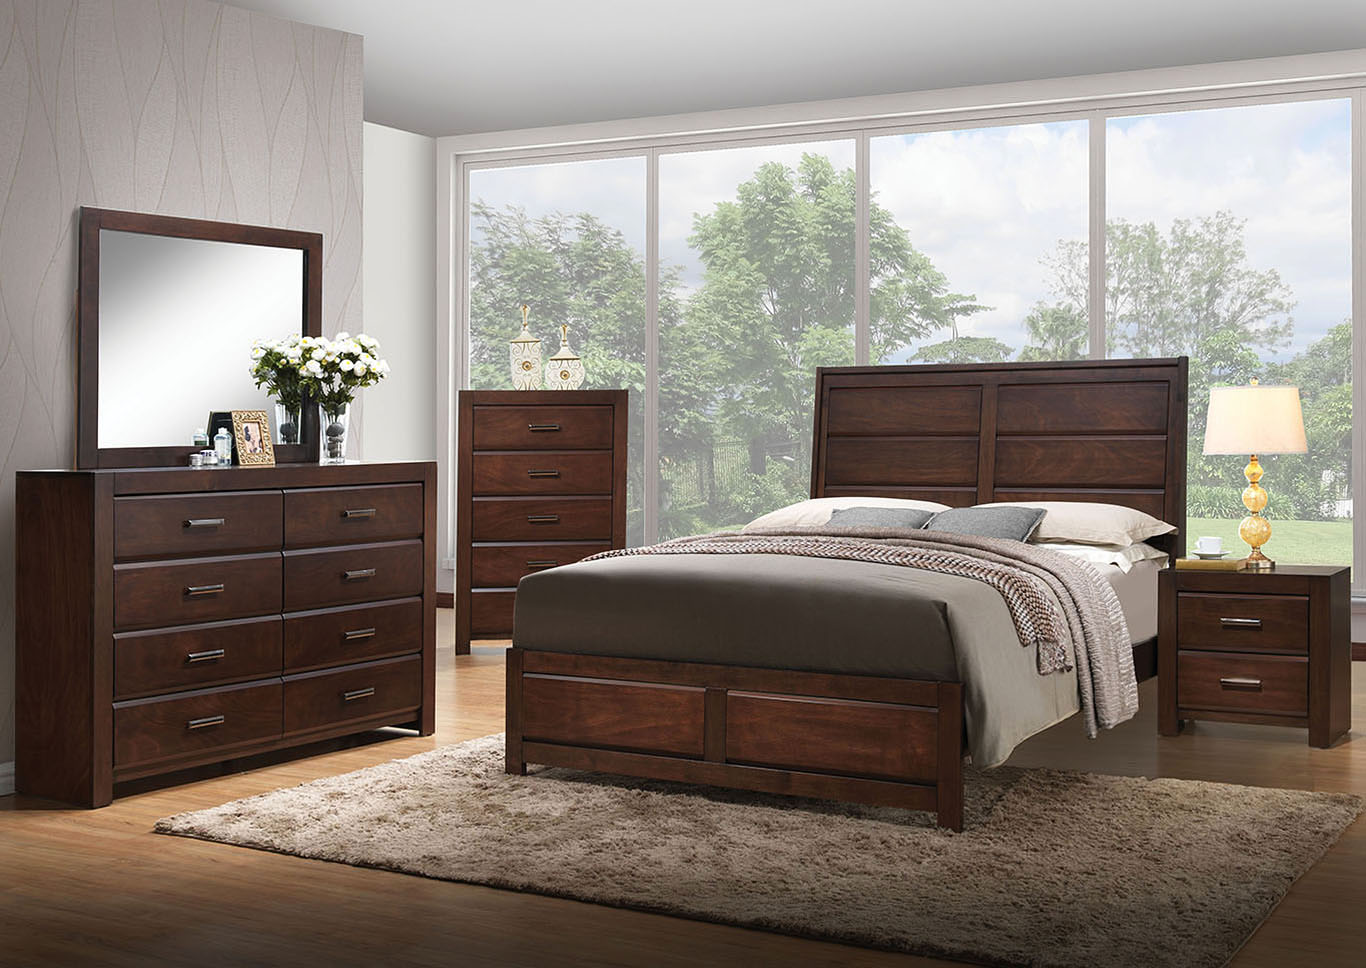 Oberreit Walnut Eastern King Panel Bed w/Dresser and Mirror,Acme